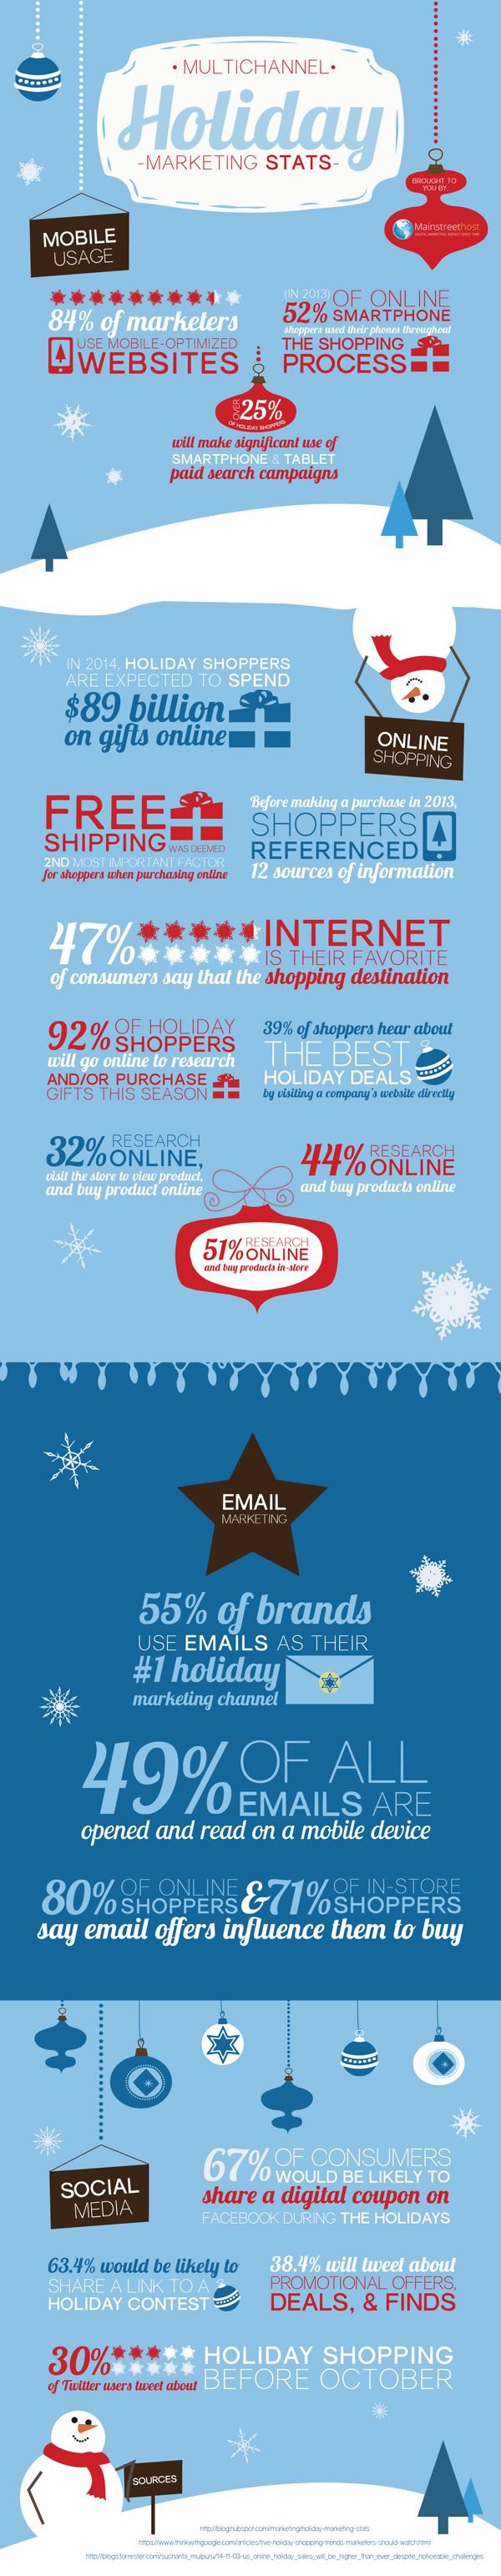 Multichannel Holiday Marketing Stats